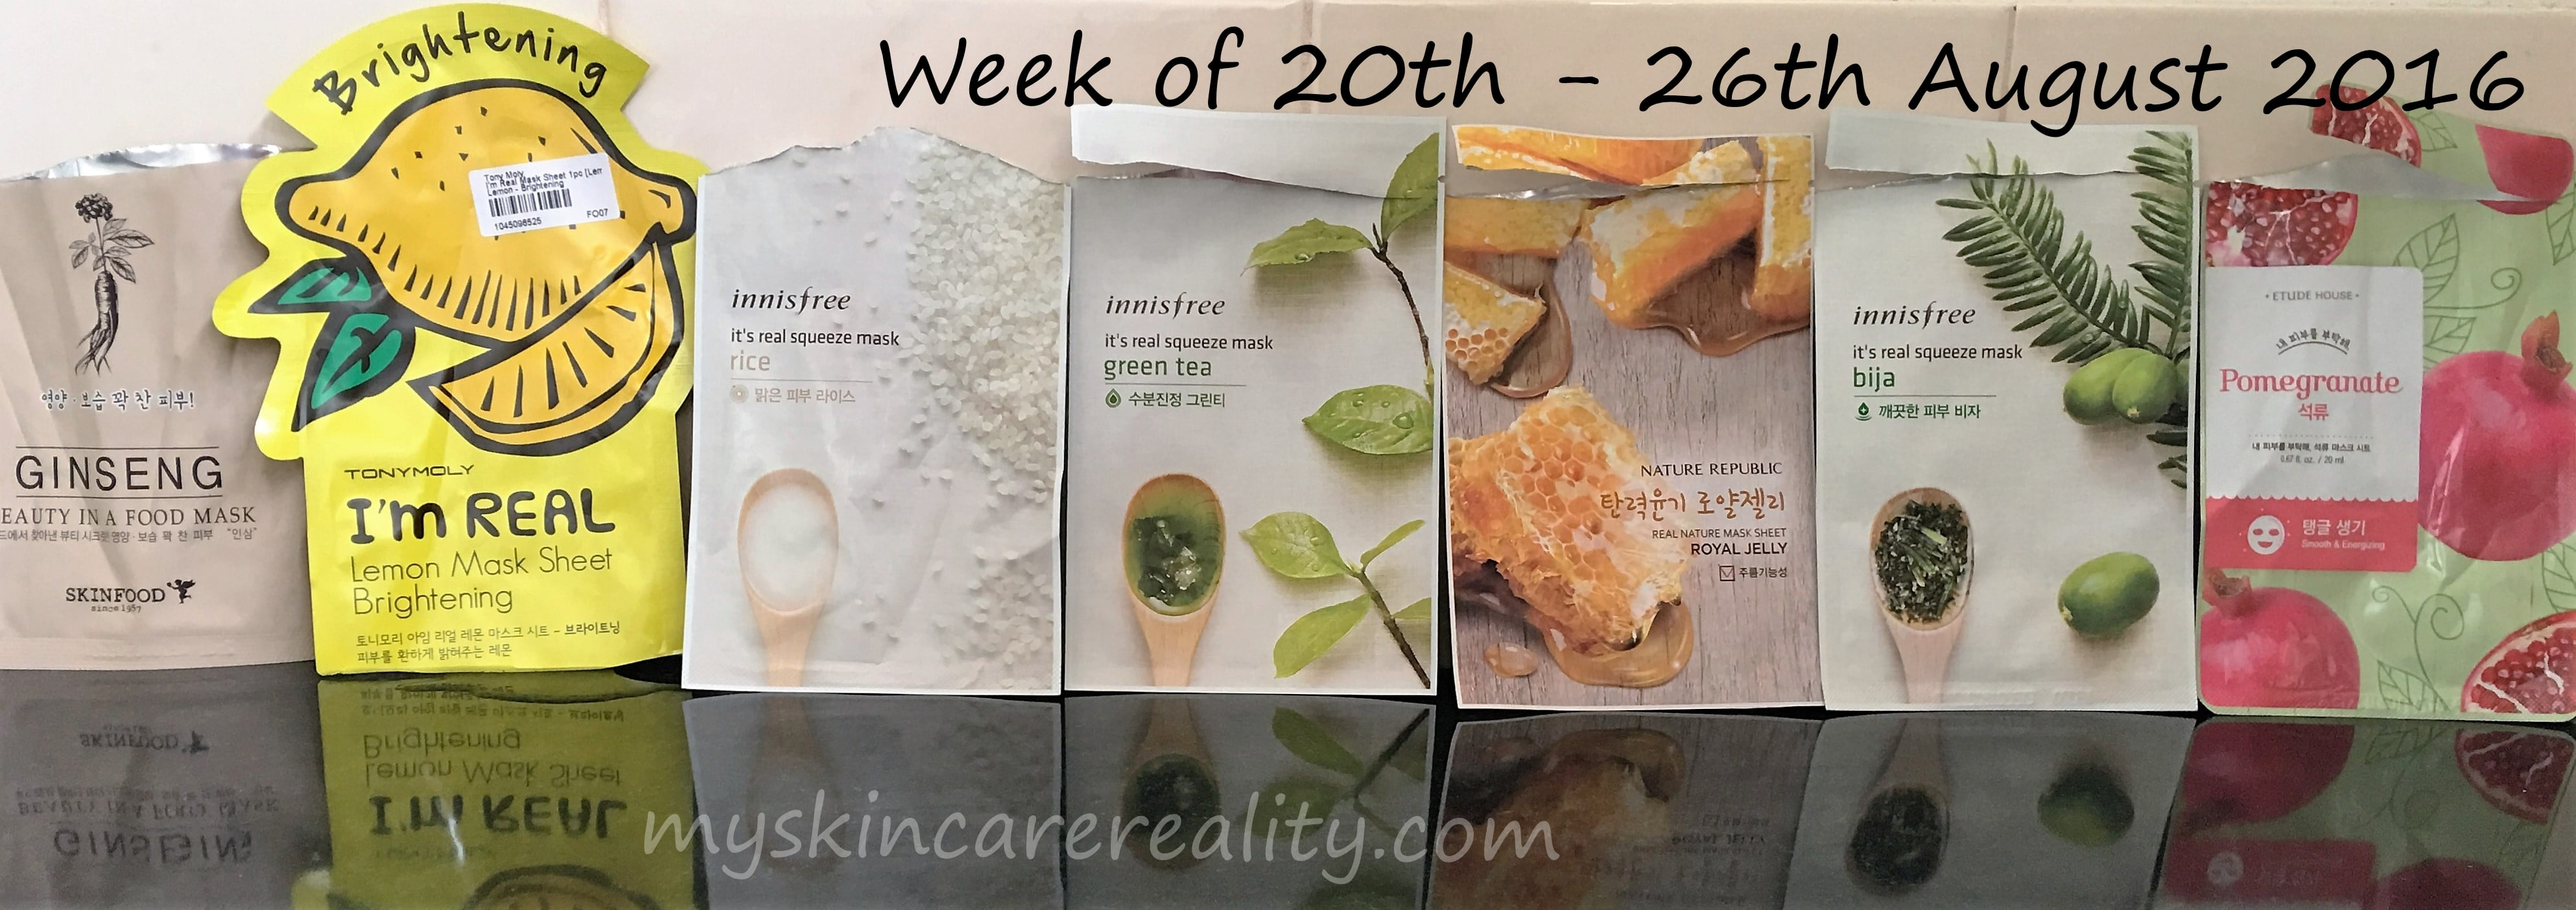 7 Days of Sheet Mask Reviews | 20th – 26th August 2016 | My Skincare Reality